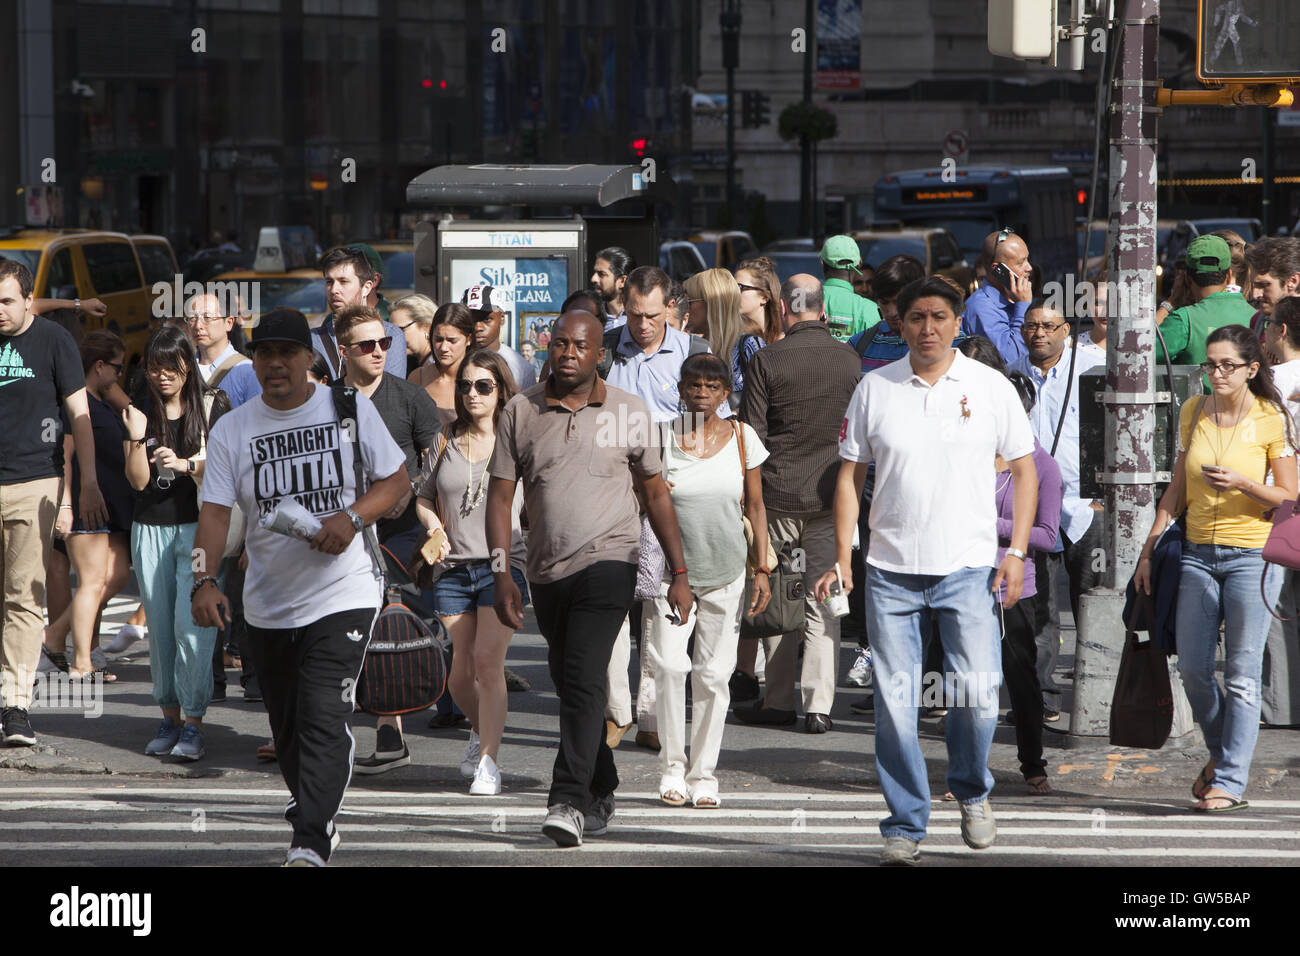 The crosswalks are always jammed at 5th Avenue and 42nd Street in midtown Manhattan. - Stock Image